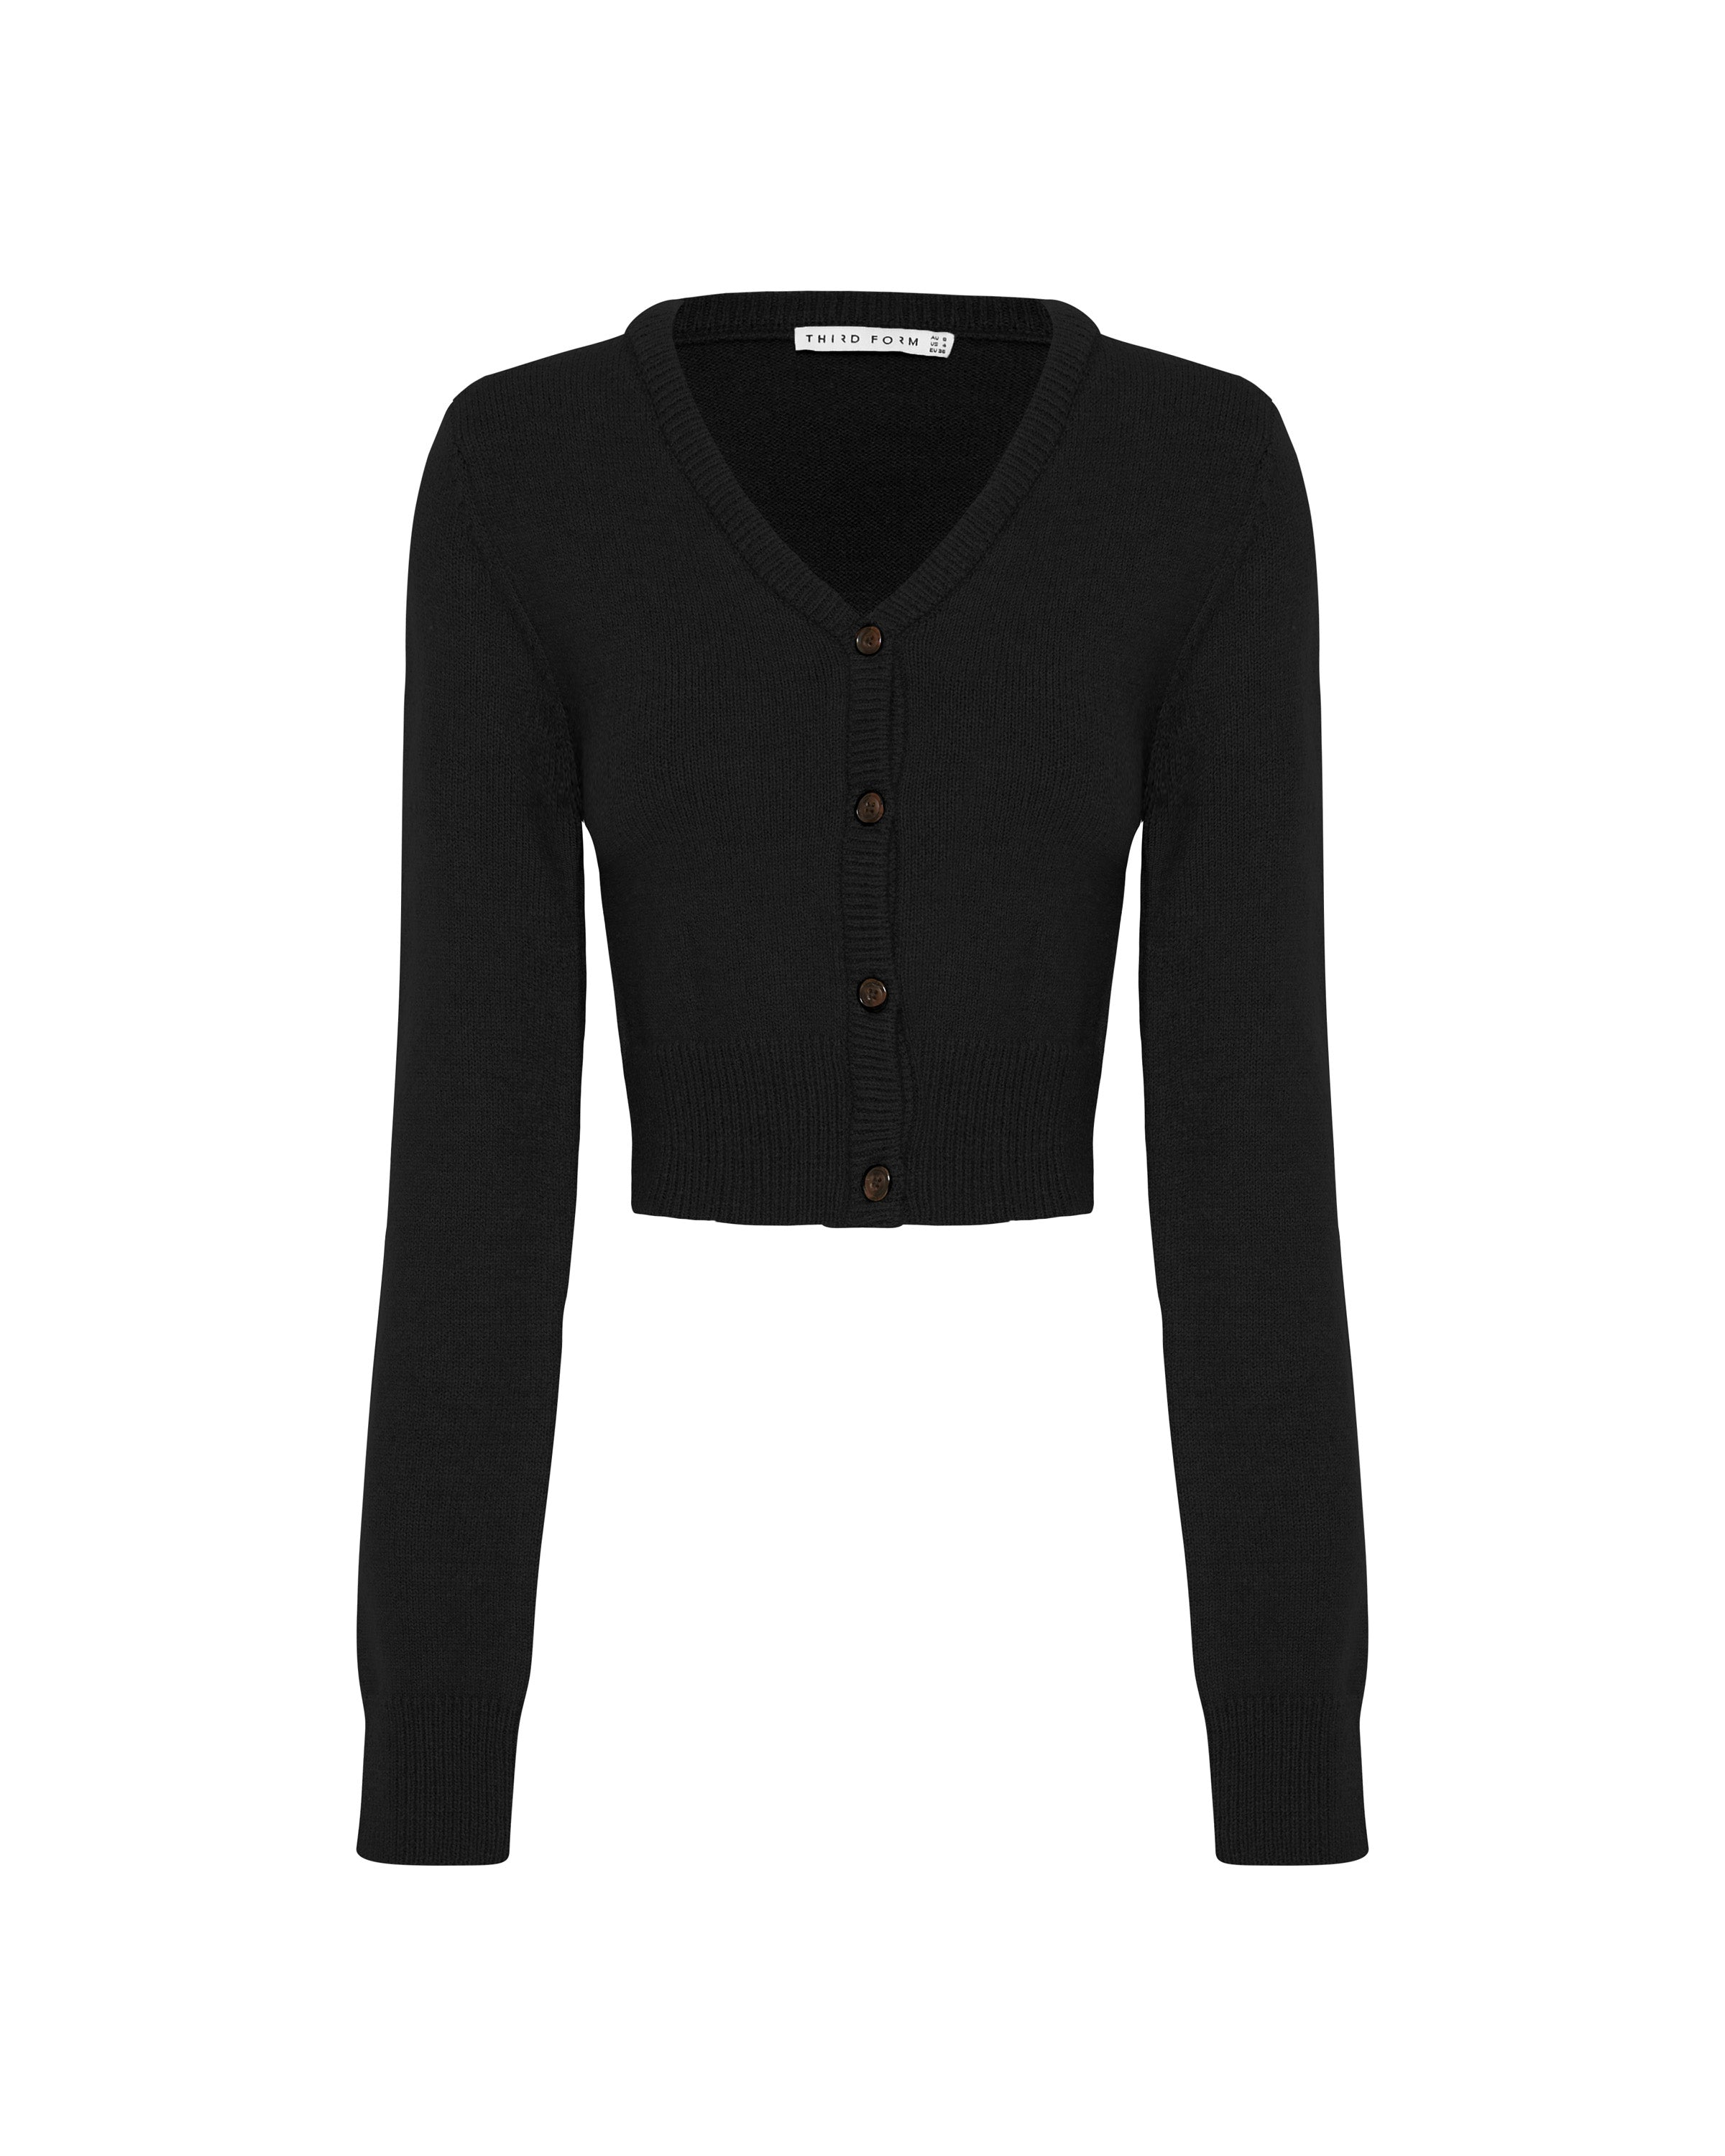 CROP KNIT CARDIGAN | BLACK